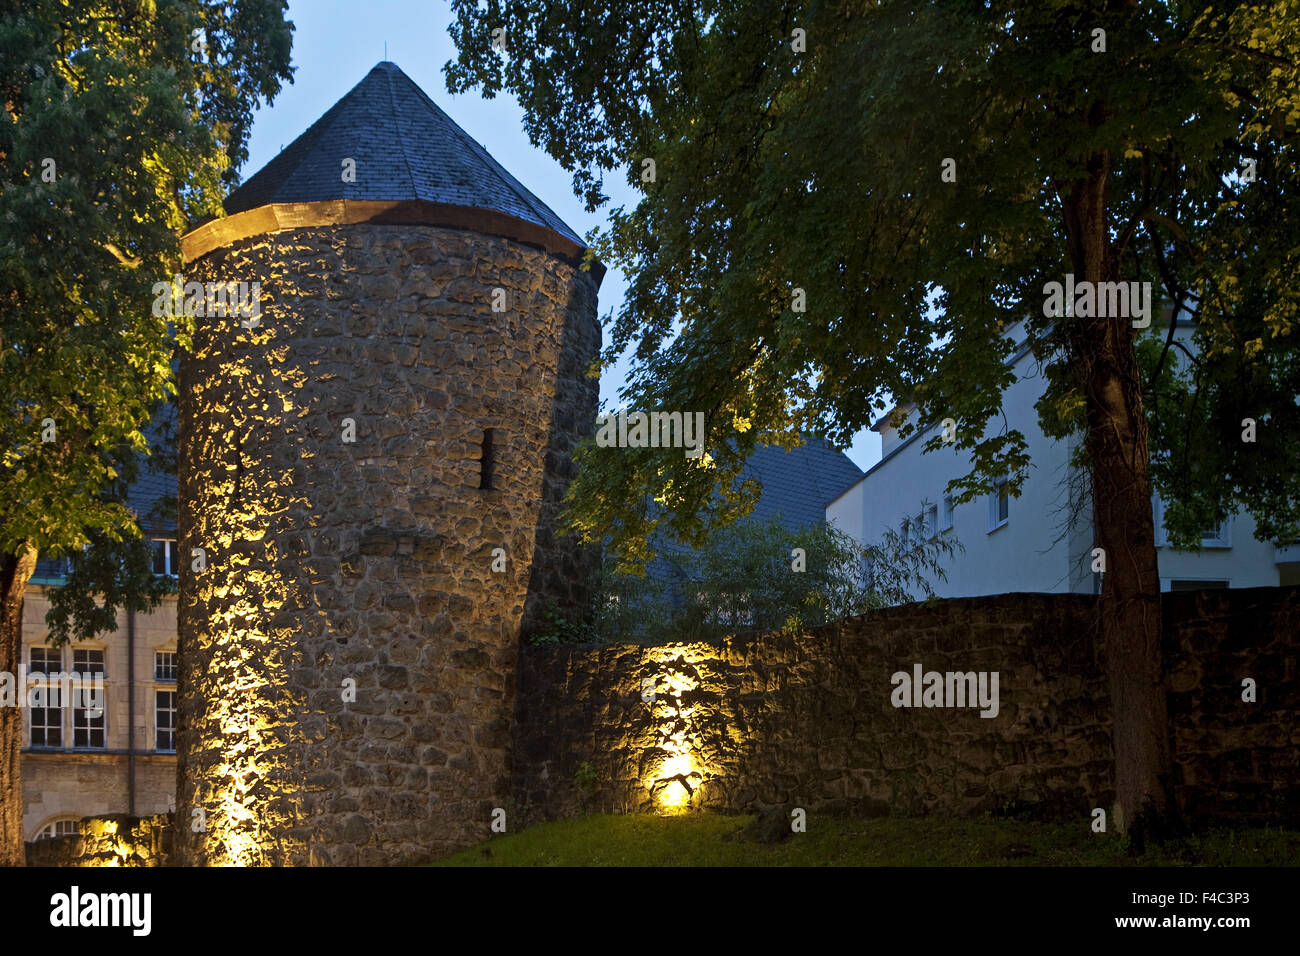 City wall, Recklinghausen, Germany - Stock Image